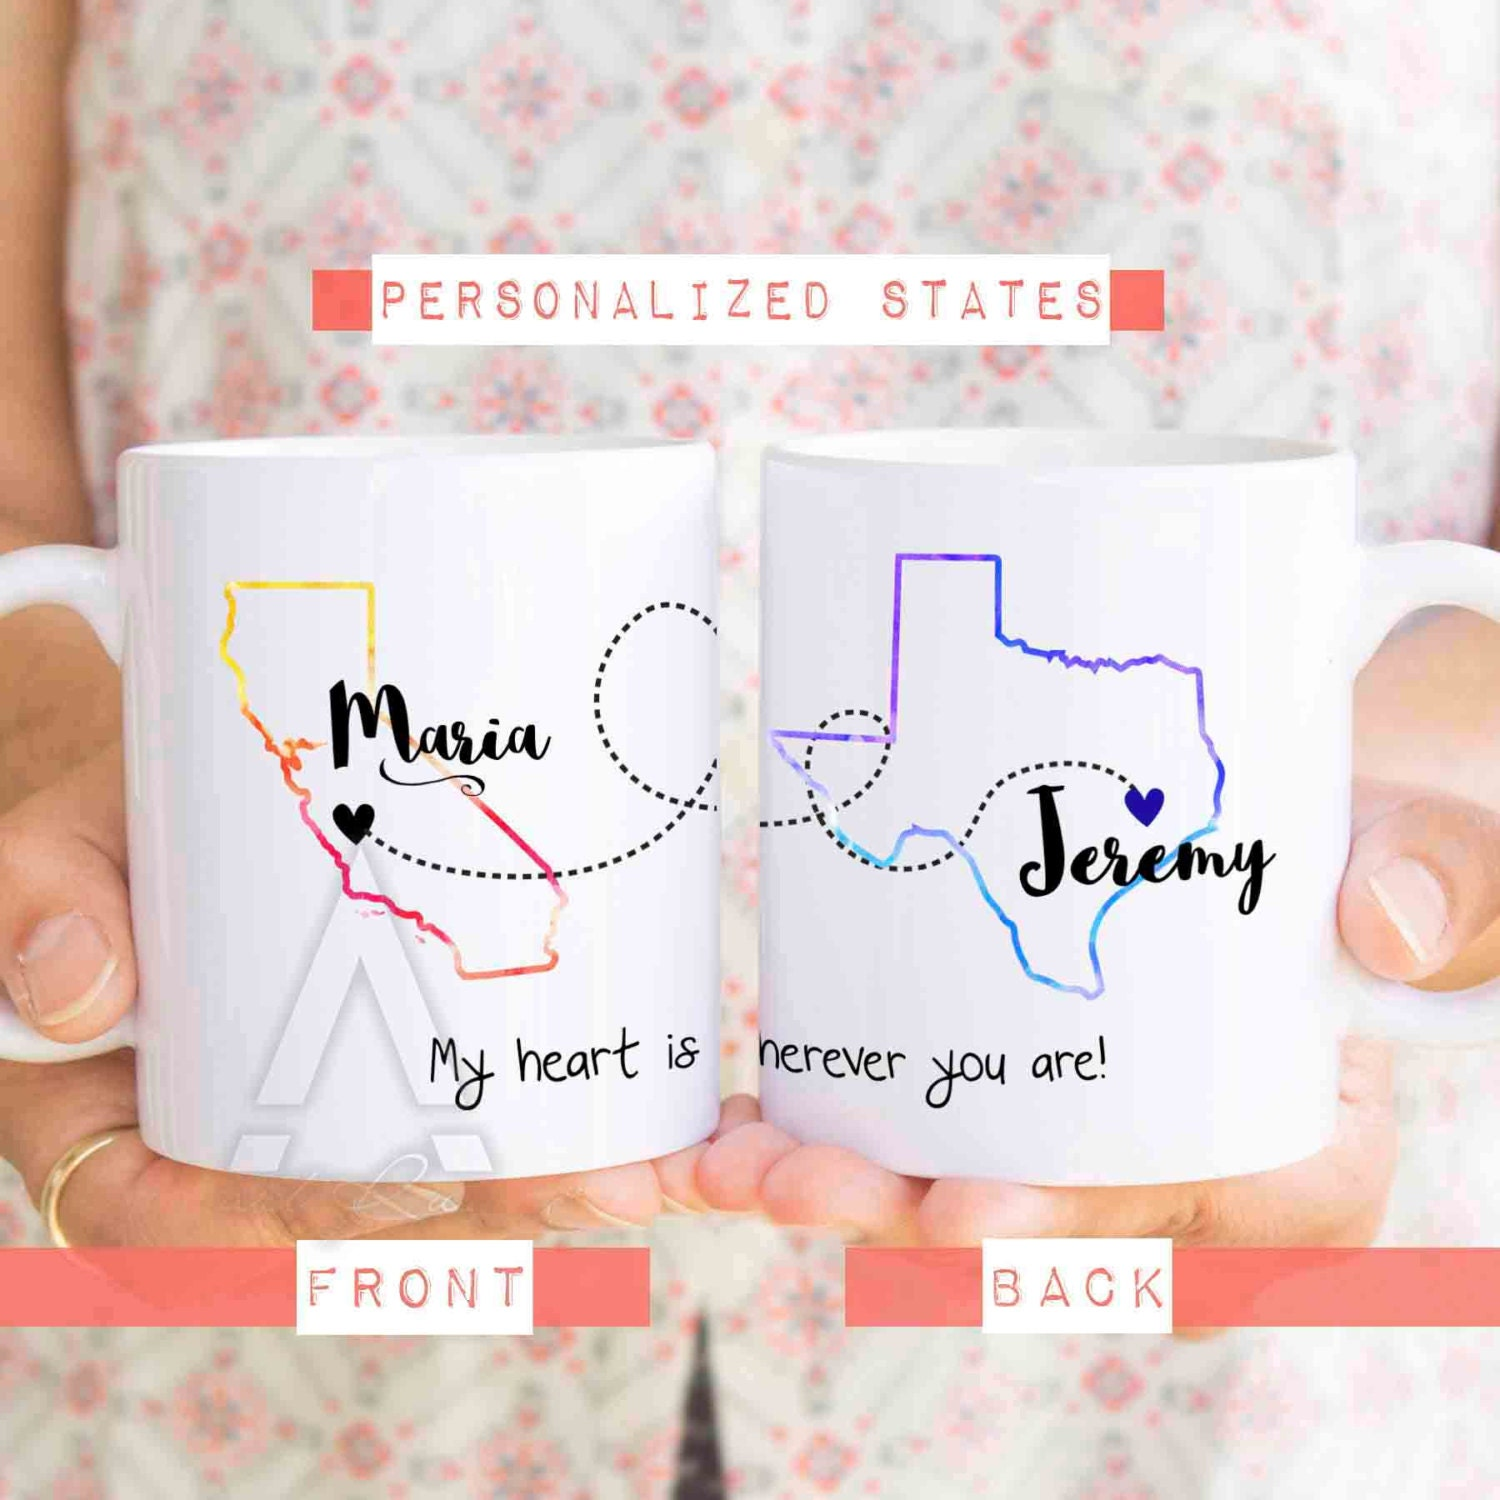 Christmas Gift Ideas For Long Distance Boyfriend: Christmas Gifts For Boyfriend Long Distance Relationship